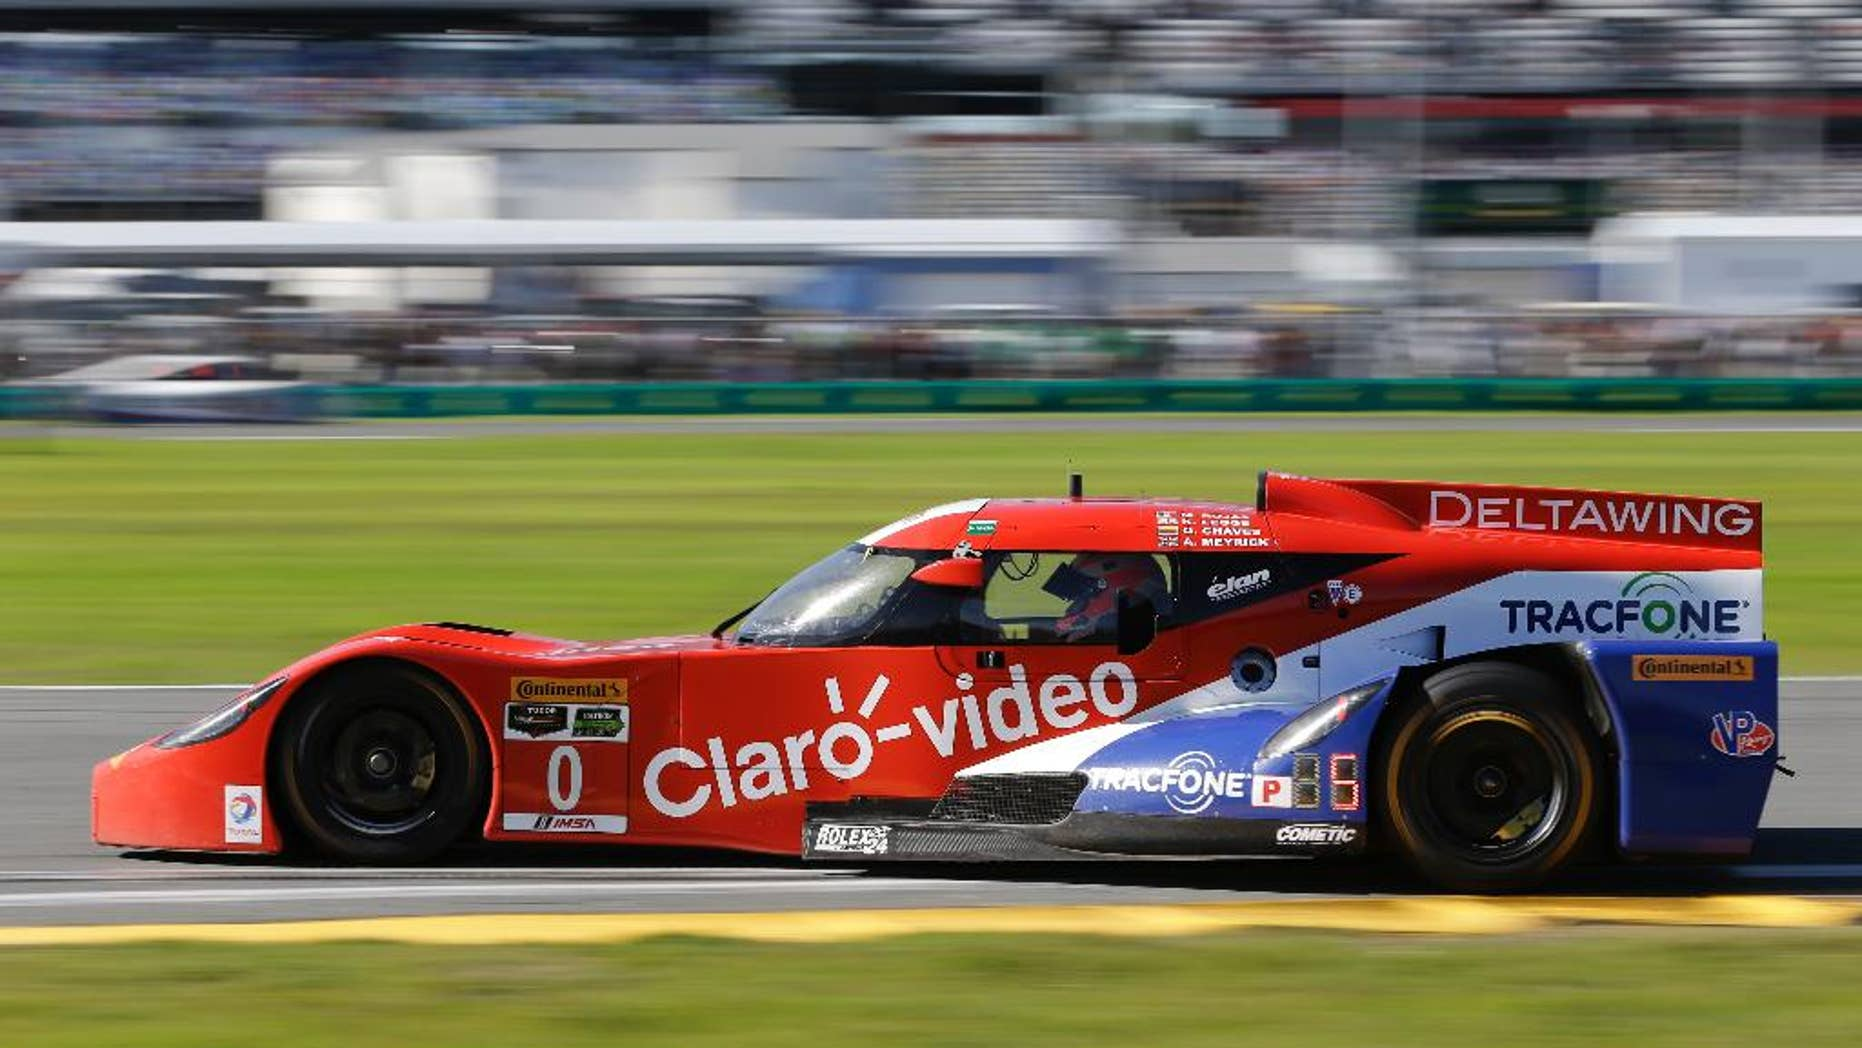 In this Saturday, Jan. 24, 2015 file photo, Andy Meyrick, of England, drives the DeltaWing DWC13 Elan out of turn during the IMSA 24 hour auto race at Daytona International Speedway in Daytona Beach, Fla. Among the story lines in IMSA this year is the strength of the odd-looking DeltaWing, which led laps in the season-opening Rolex 24 at Daytona. (AP Photo/John Raoux, File)